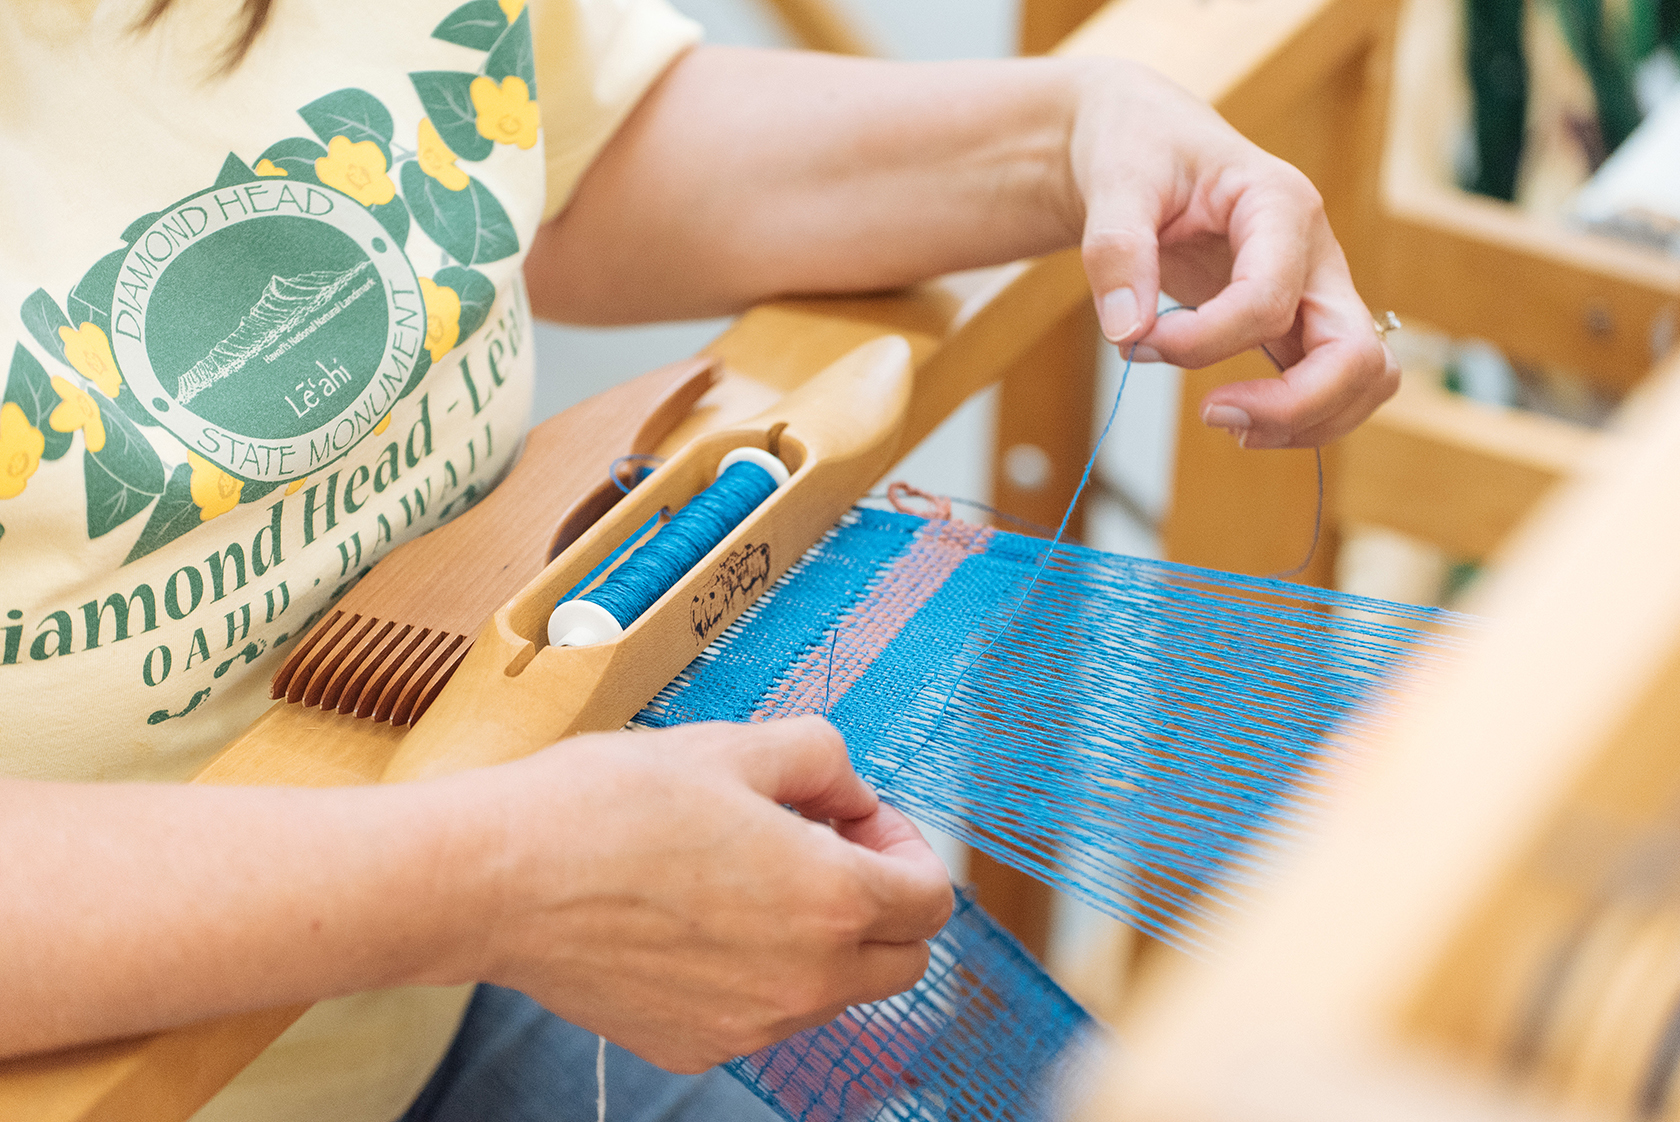 Hands operating a loom with blue and pink thread